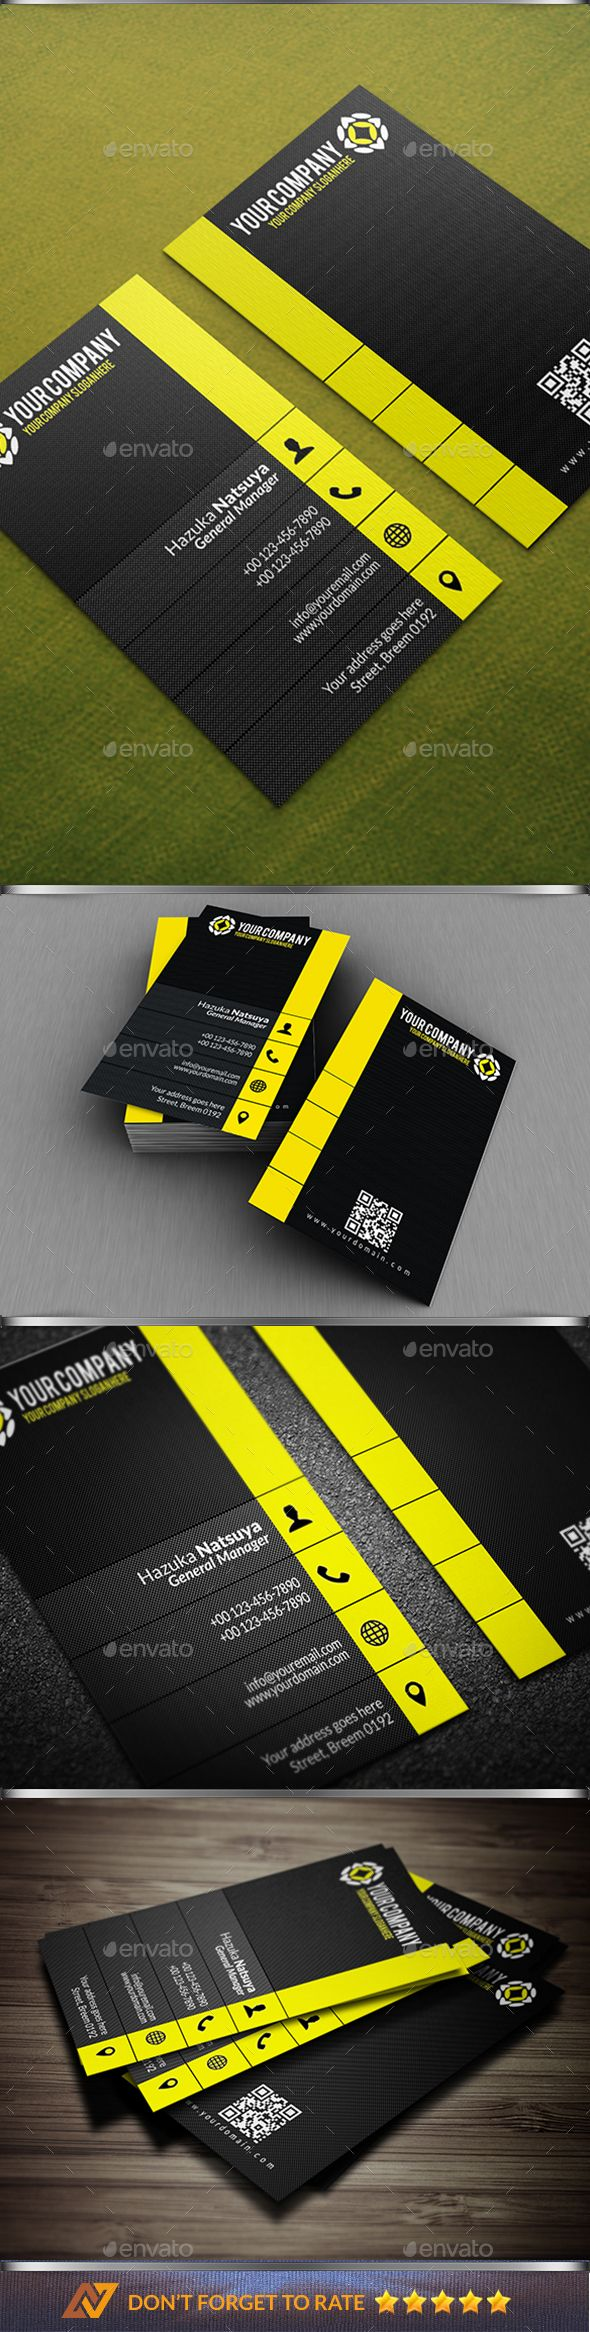 Modern #Corporate #Business #Card Vol. 4 - Corporate Business Cards Download here:  https://graphicriver.net/item/modern-corporate-business-card-vol-4/20339600?ref=alena994